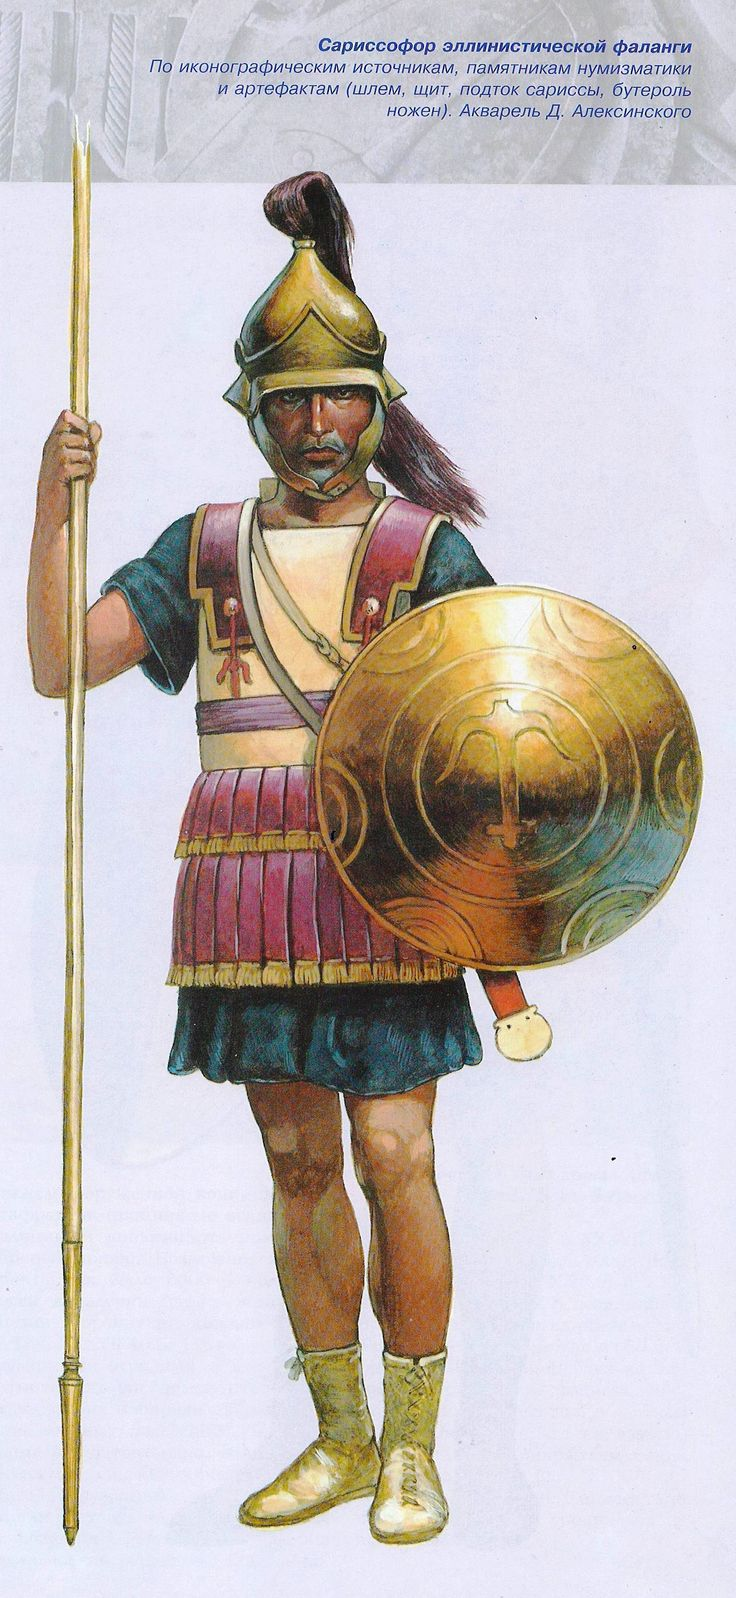 history greeks hellenic and hellenistic The three centuries of greek history between the death of alexander the great in  323 bce and the rise of augustus in rome in 31 bce are collectively known as.